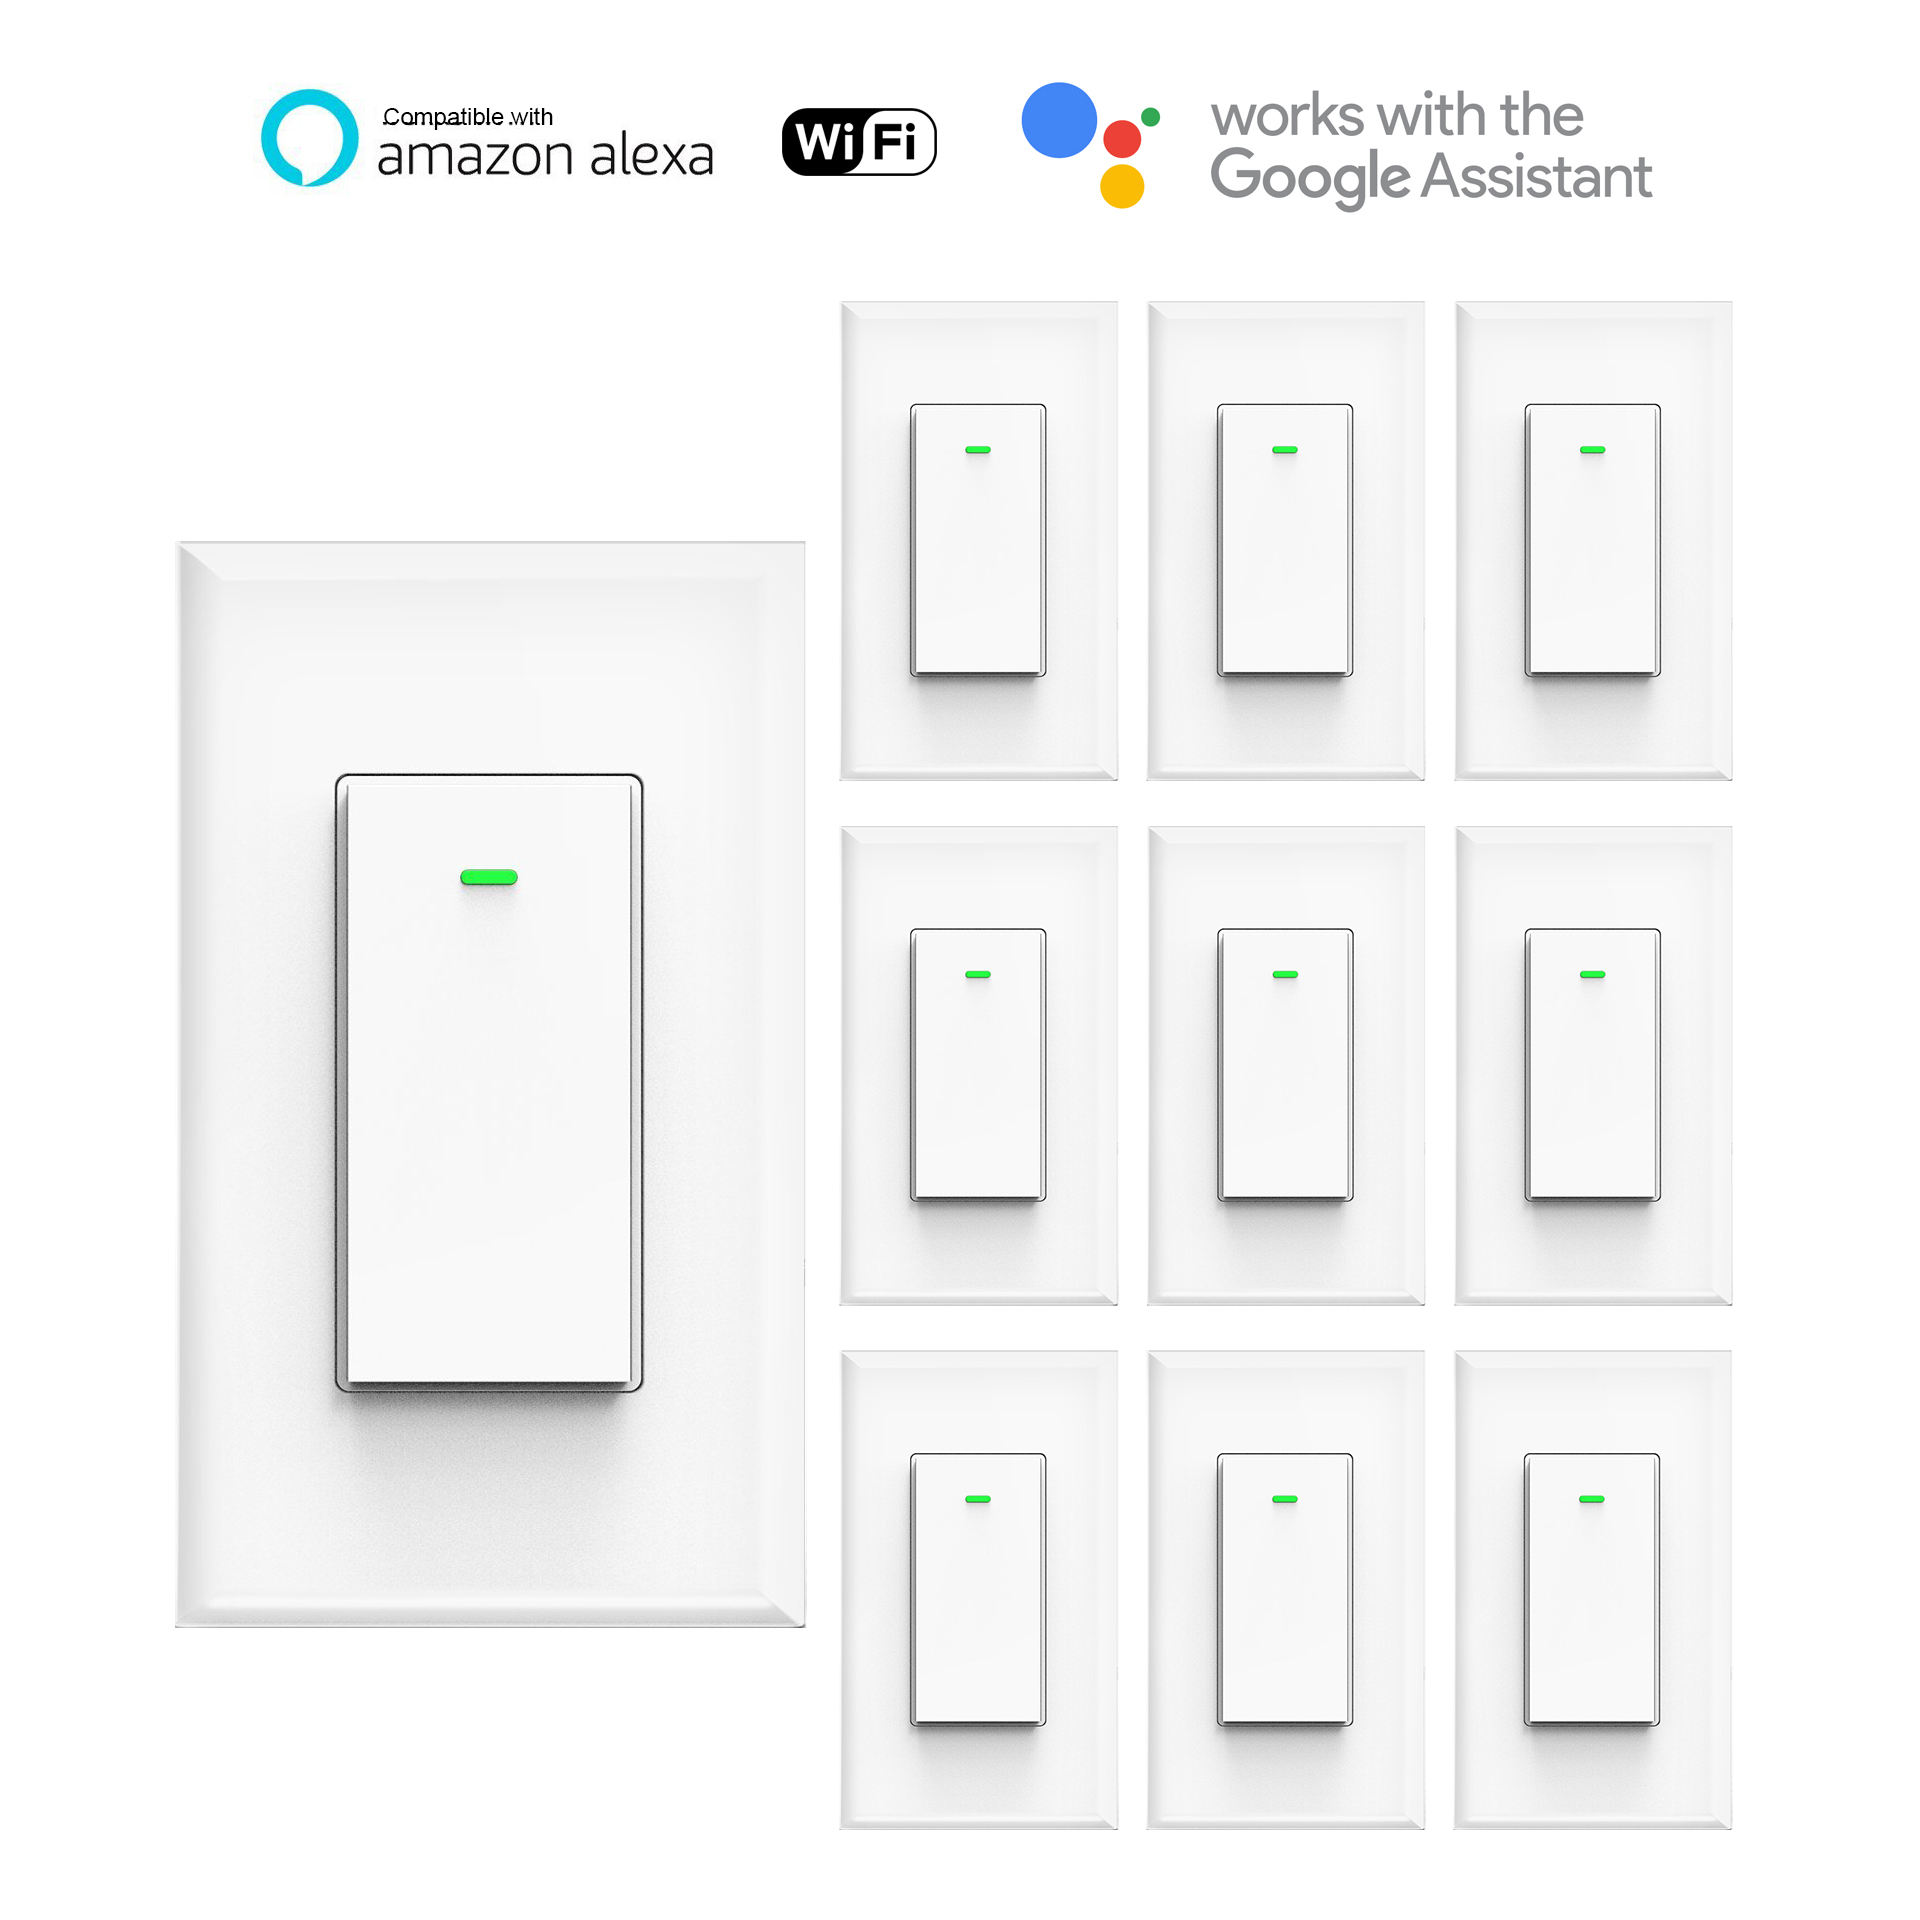 Smart Switch, WI-FI Wall Light Switch, Phone Remote Control Wireless Switch, Timing Schedule, Automatic Control Your Fixtures From Anywhere,Compatible with Alexa, No Hub Required Kuled (10pack)